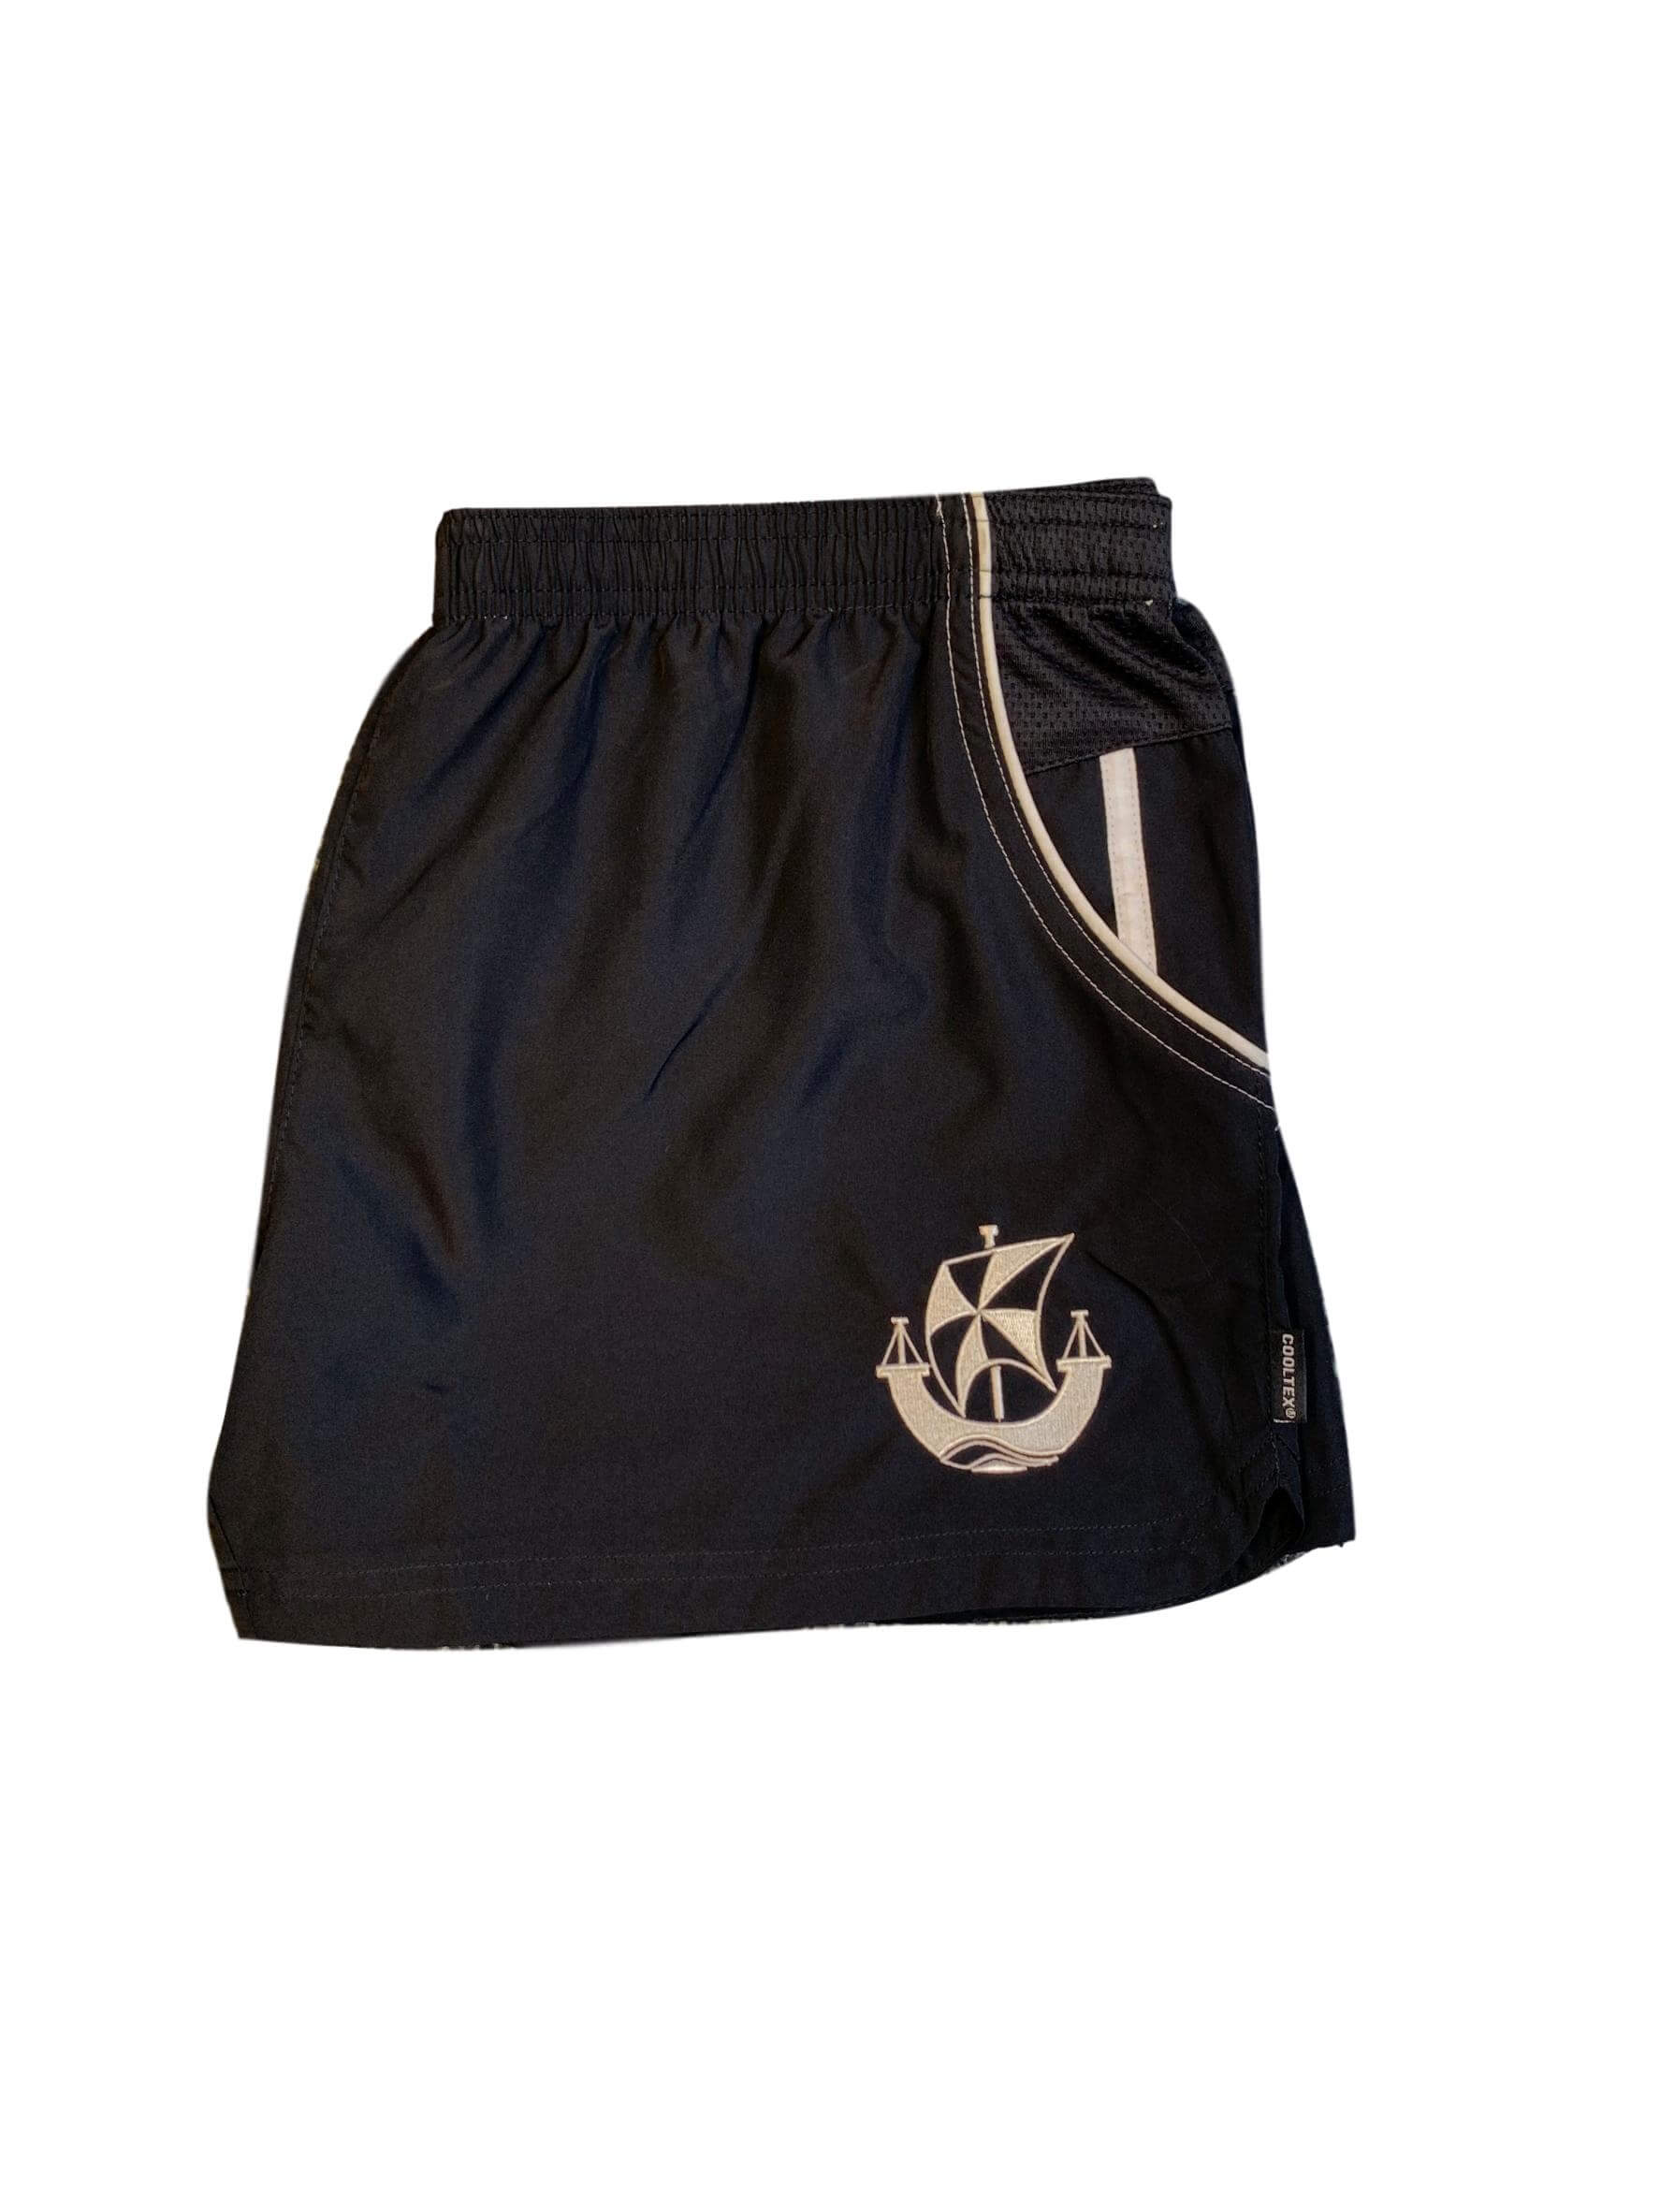 Girls Sport/ Hockey Shorts